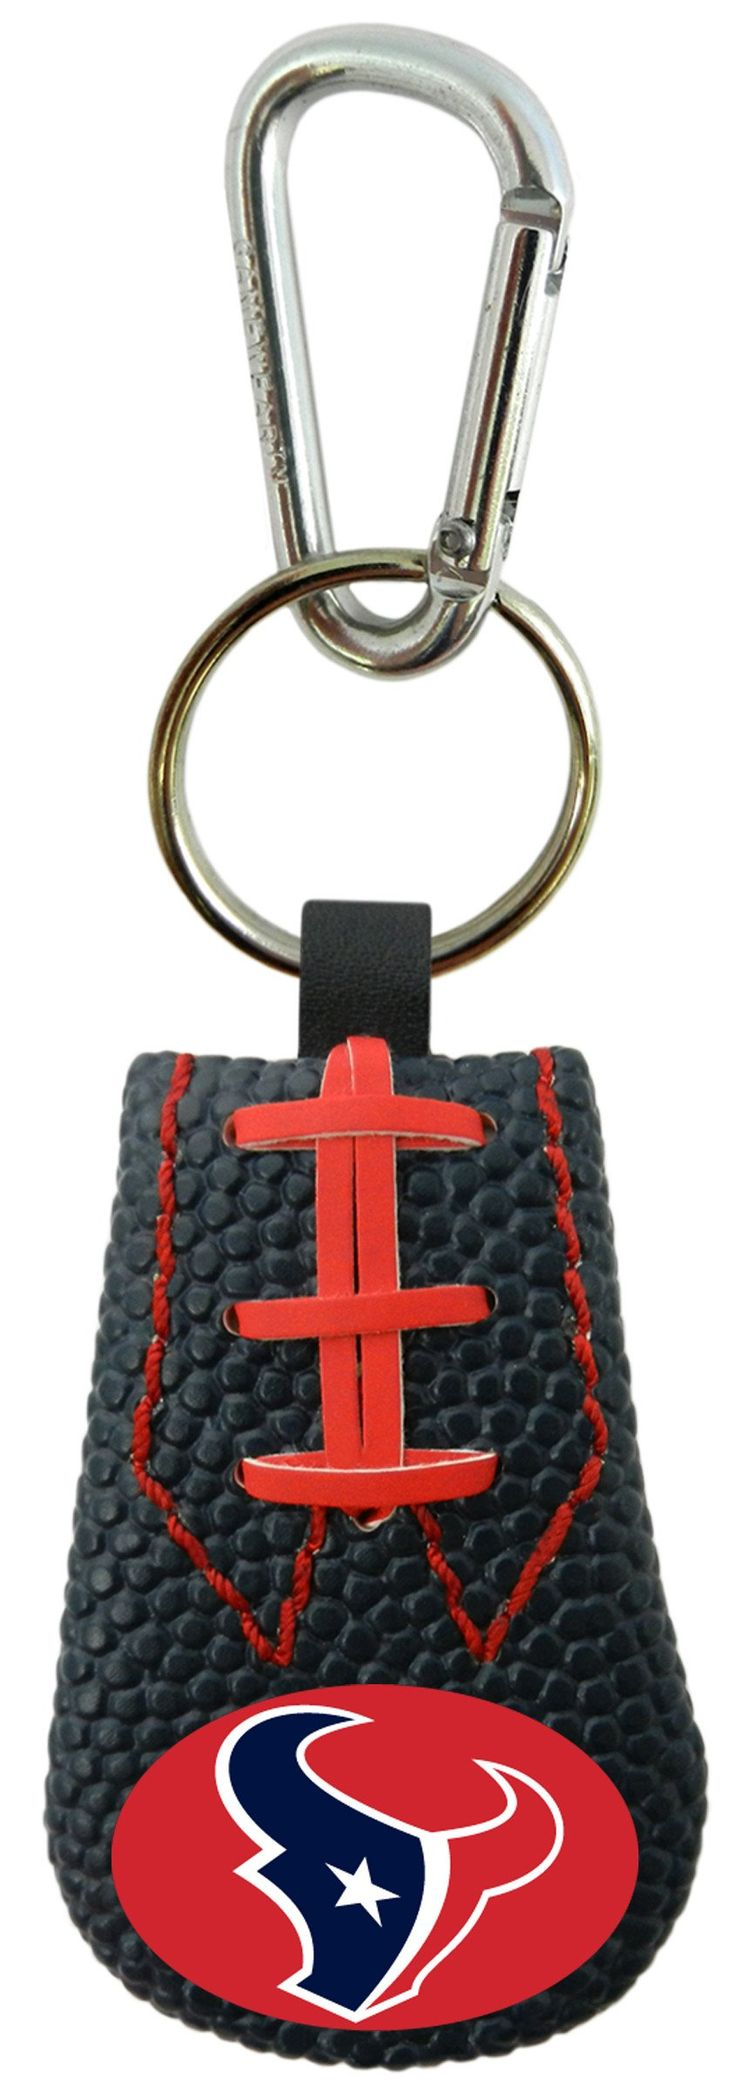 Houston Texans Team Color Football Keychain